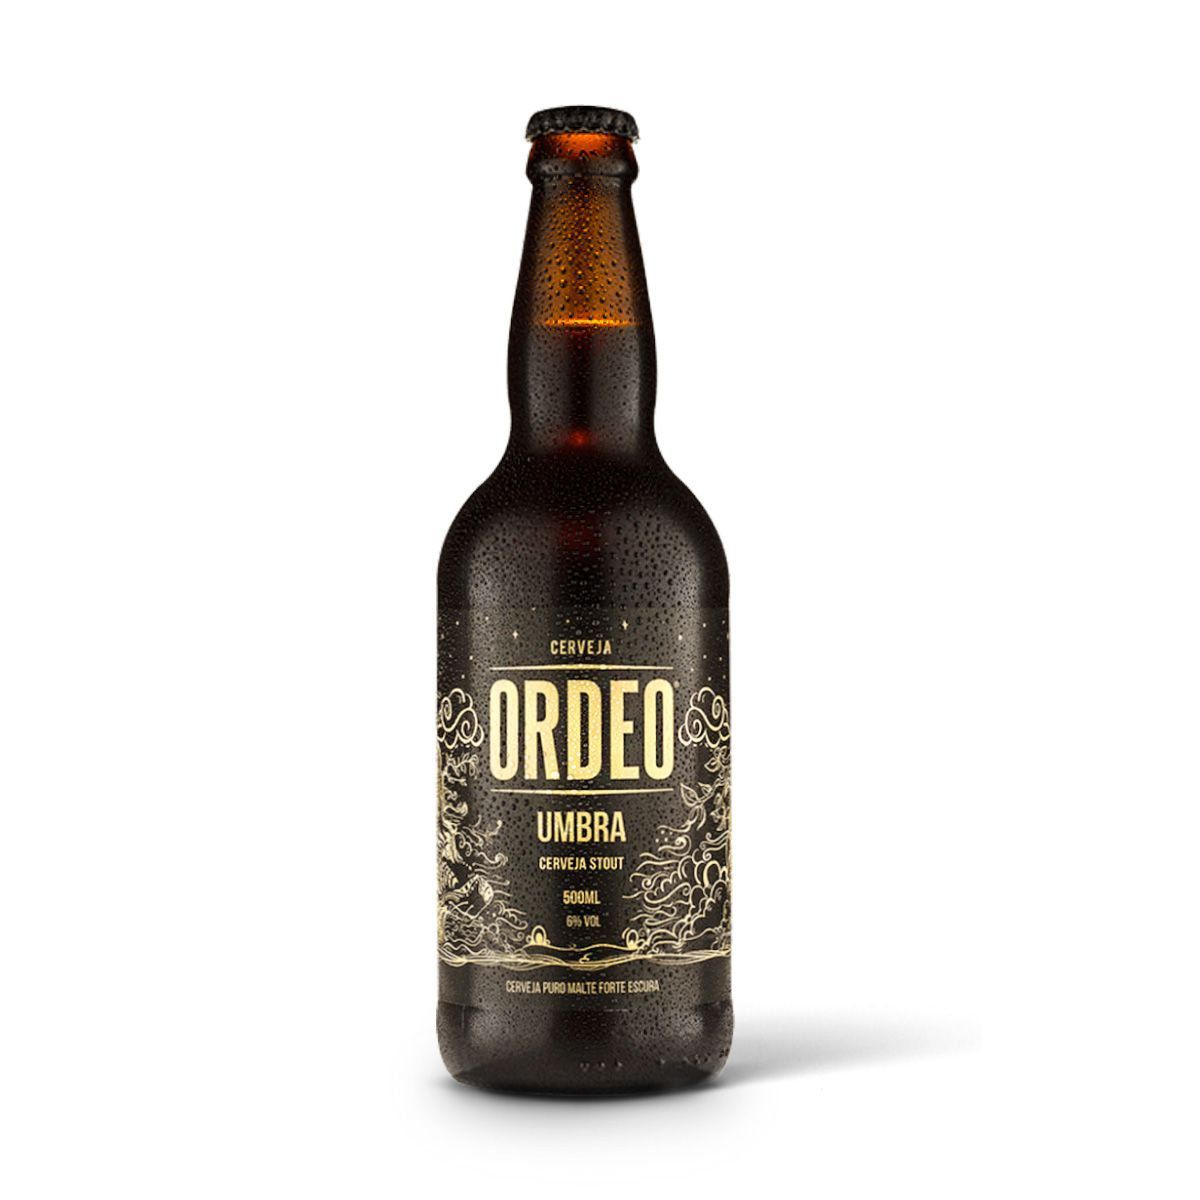 Ordeo Irish Extra Stout Umbra 500ml